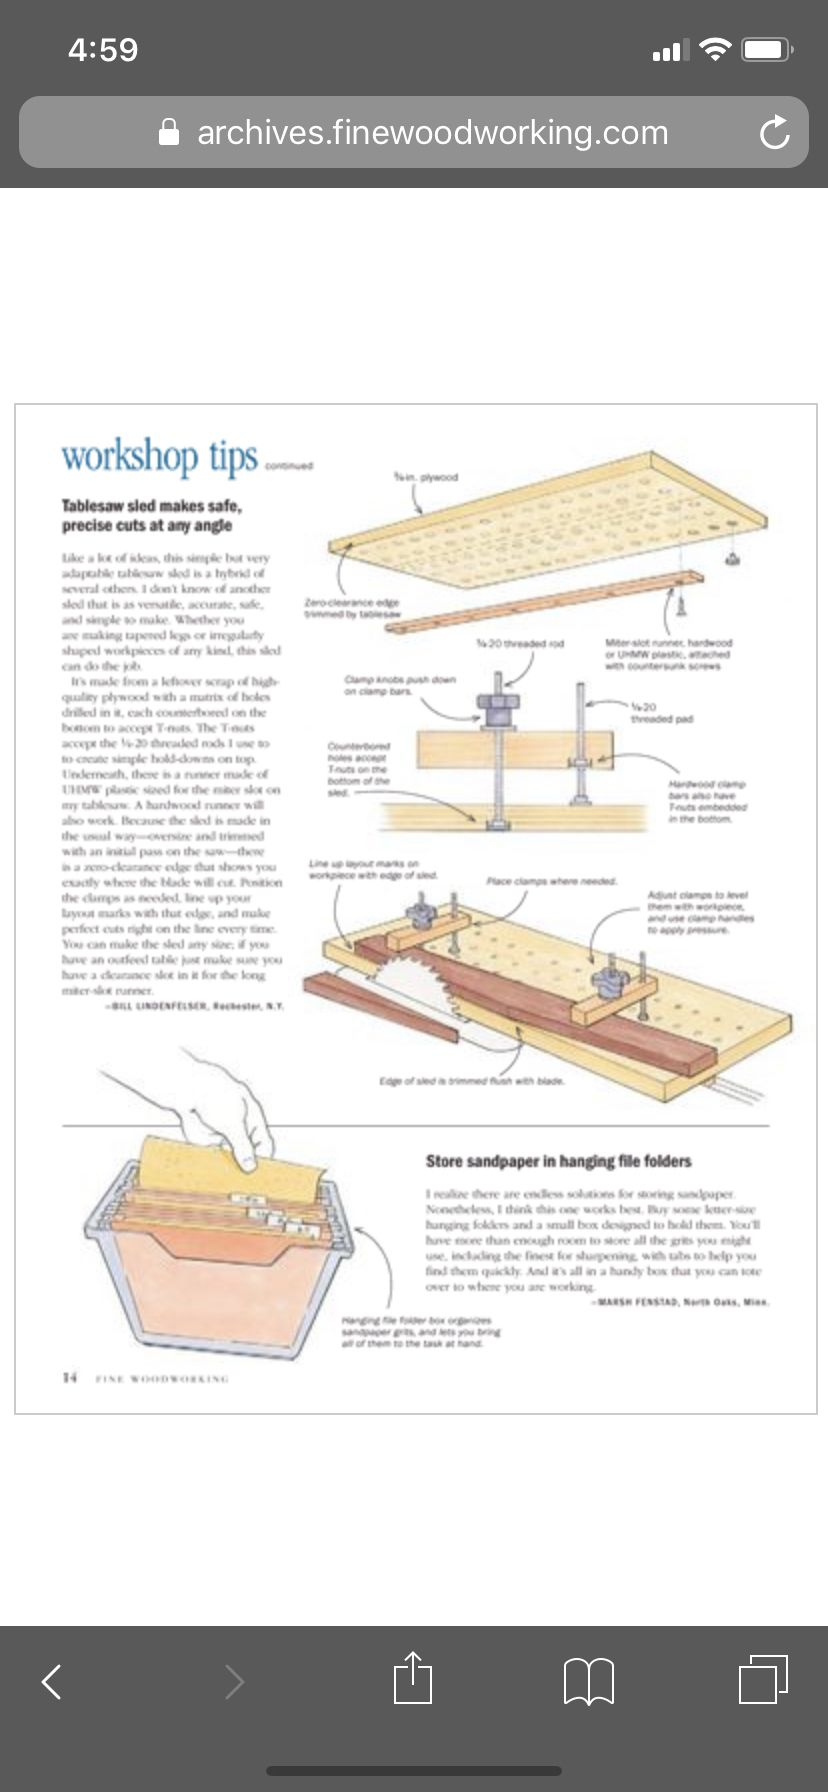 Pin by Cathy Cassel on woodworking (With images) Lock